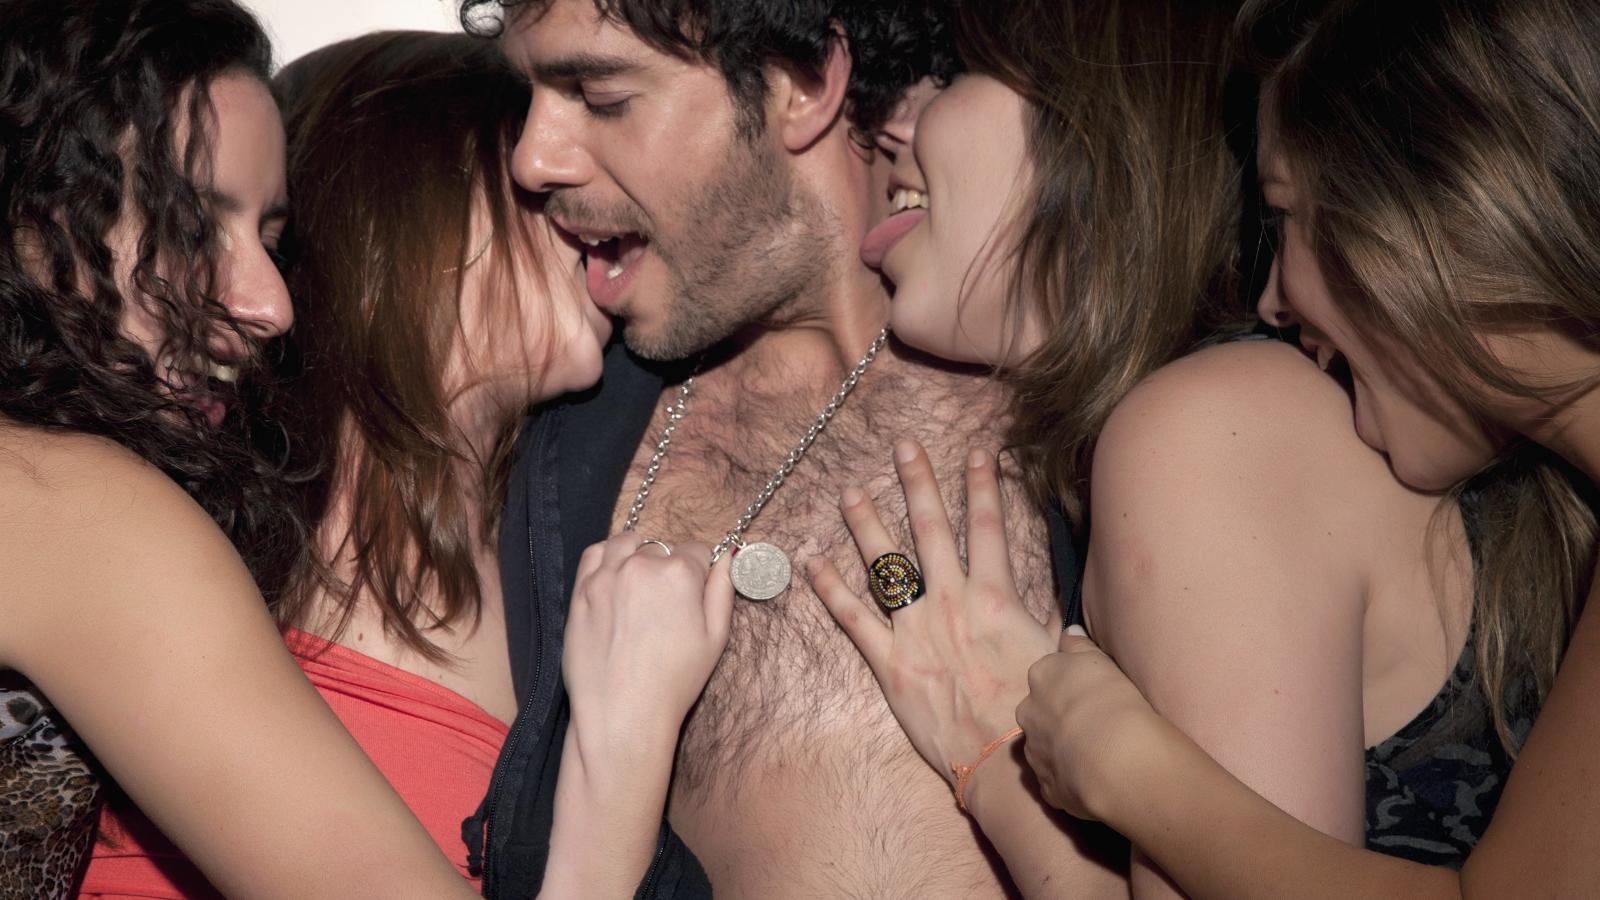 Actrces Del Porno Com enfermedades actrices porno. full hd images site. comments: 1